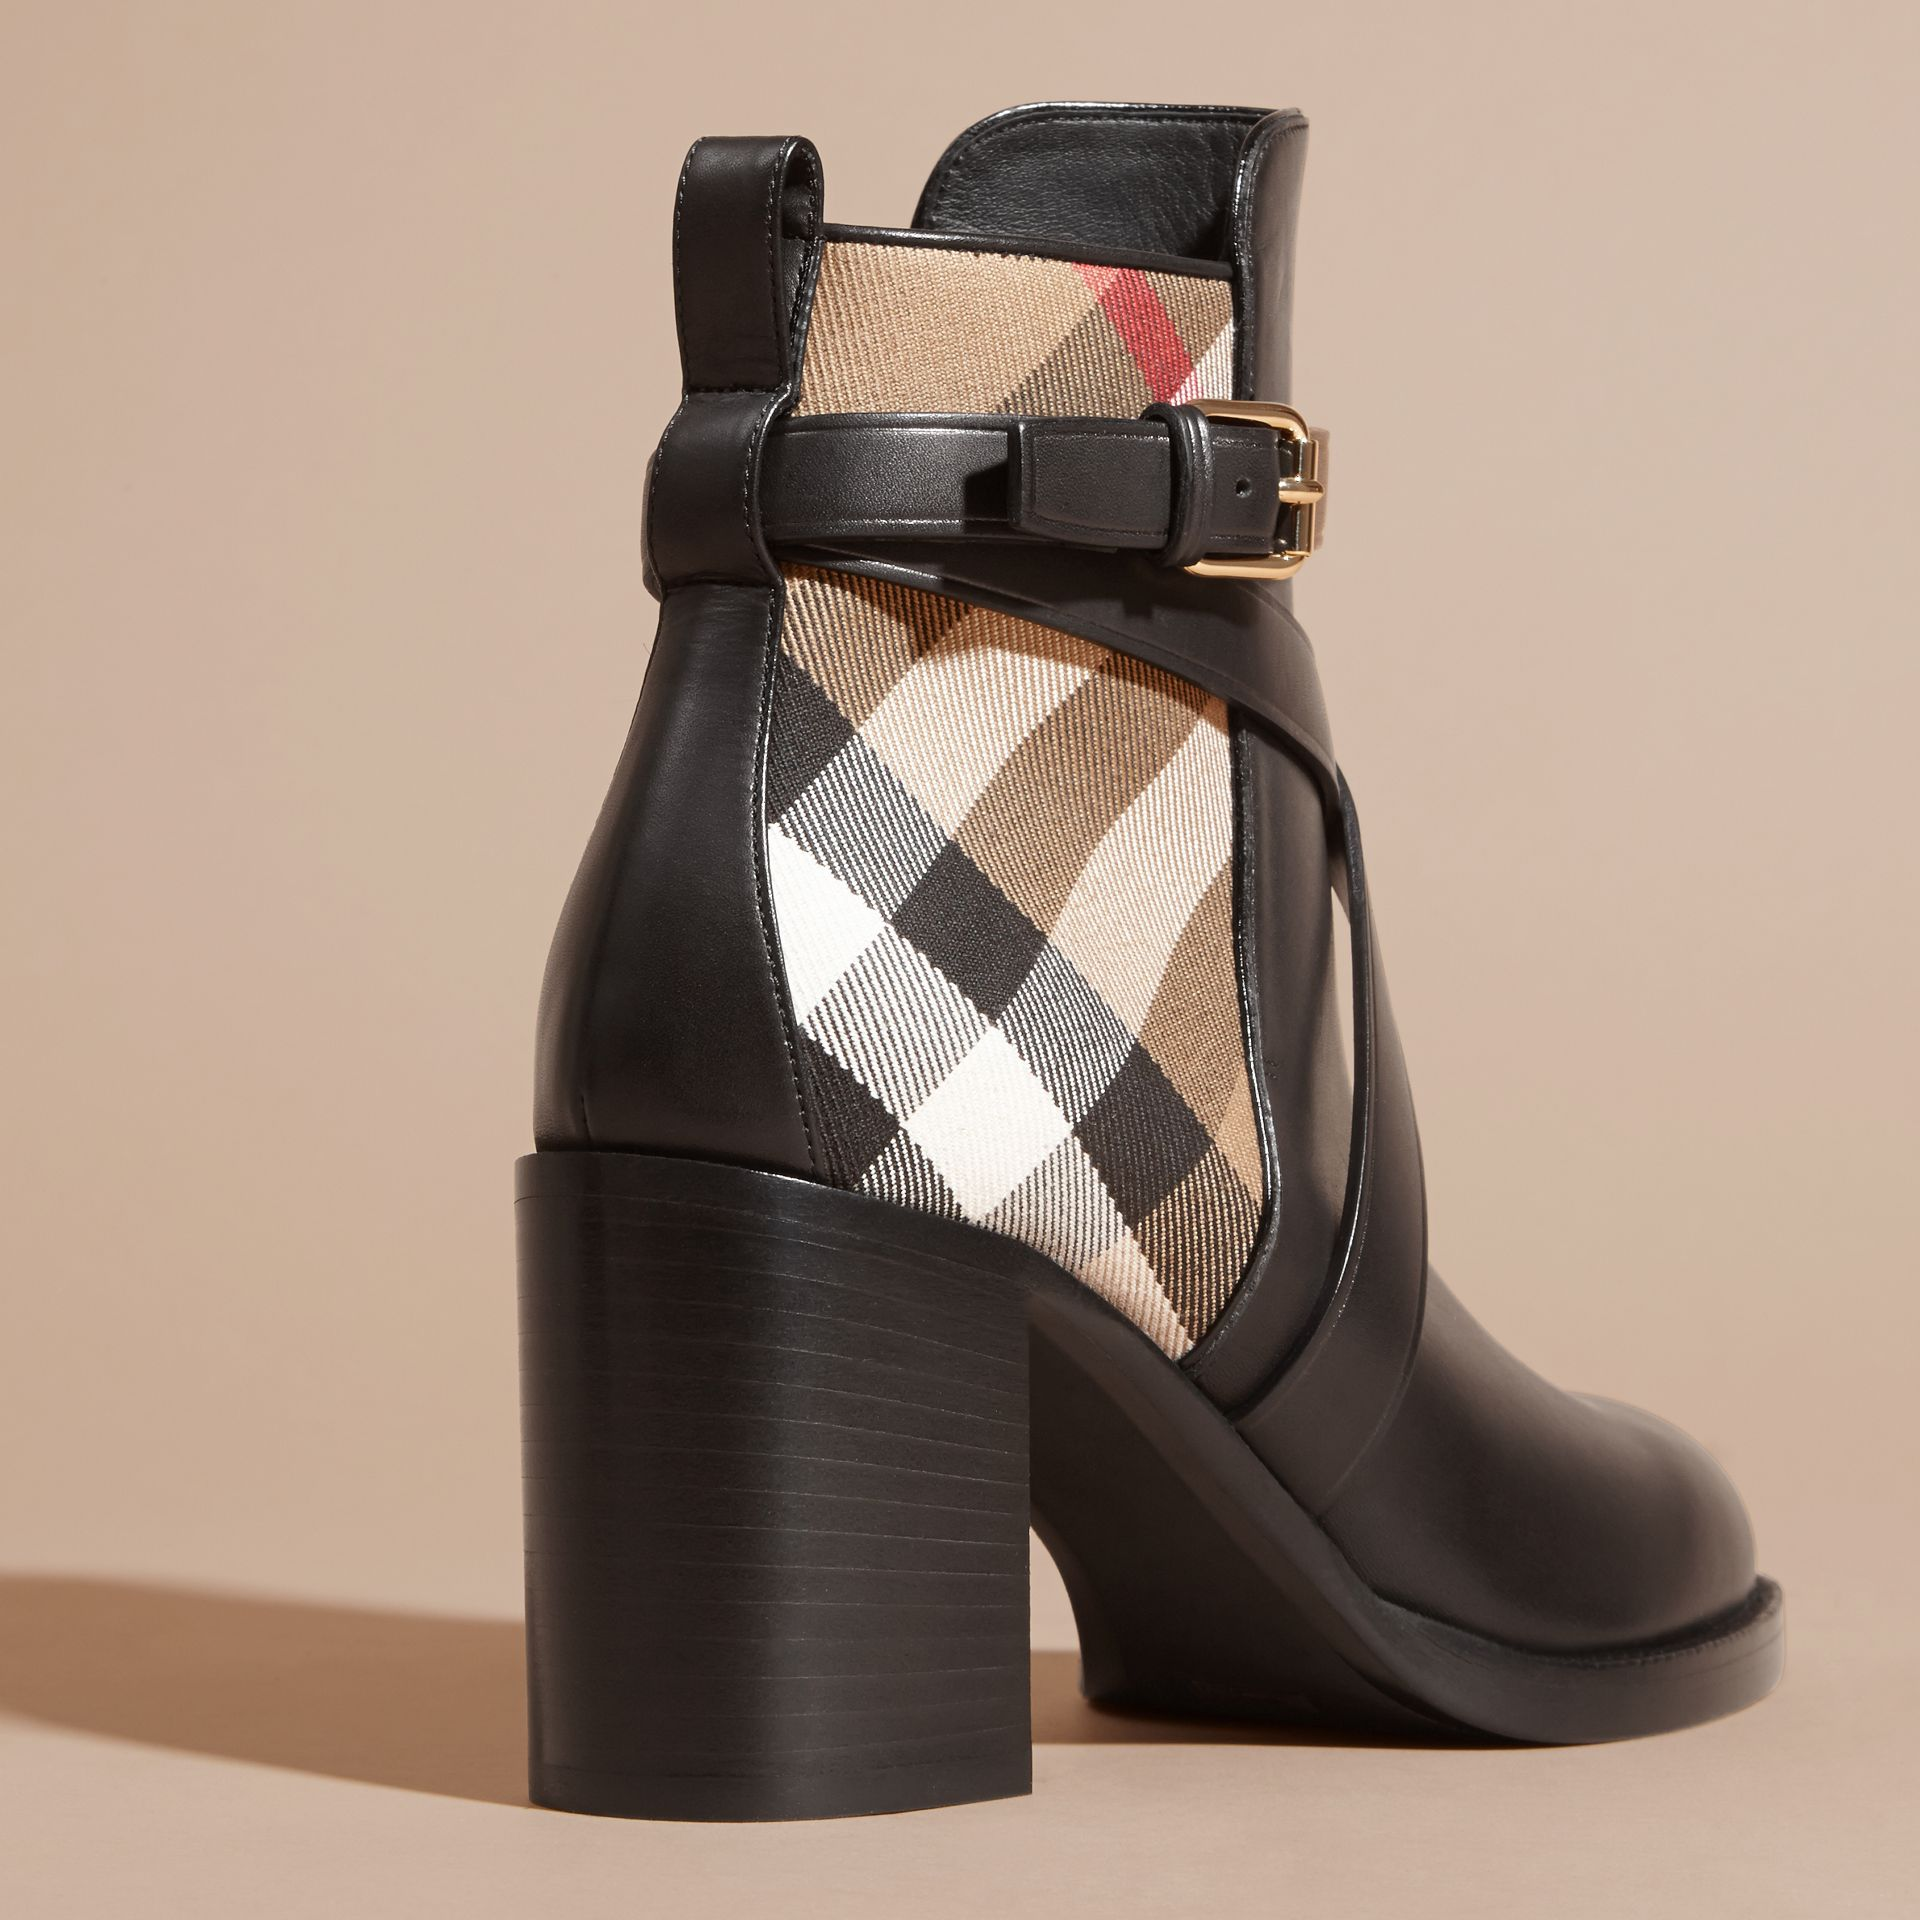 Bottines en cuir et coton House check (Noir) - Femme | Burberry Canada - photo de la galerie 3